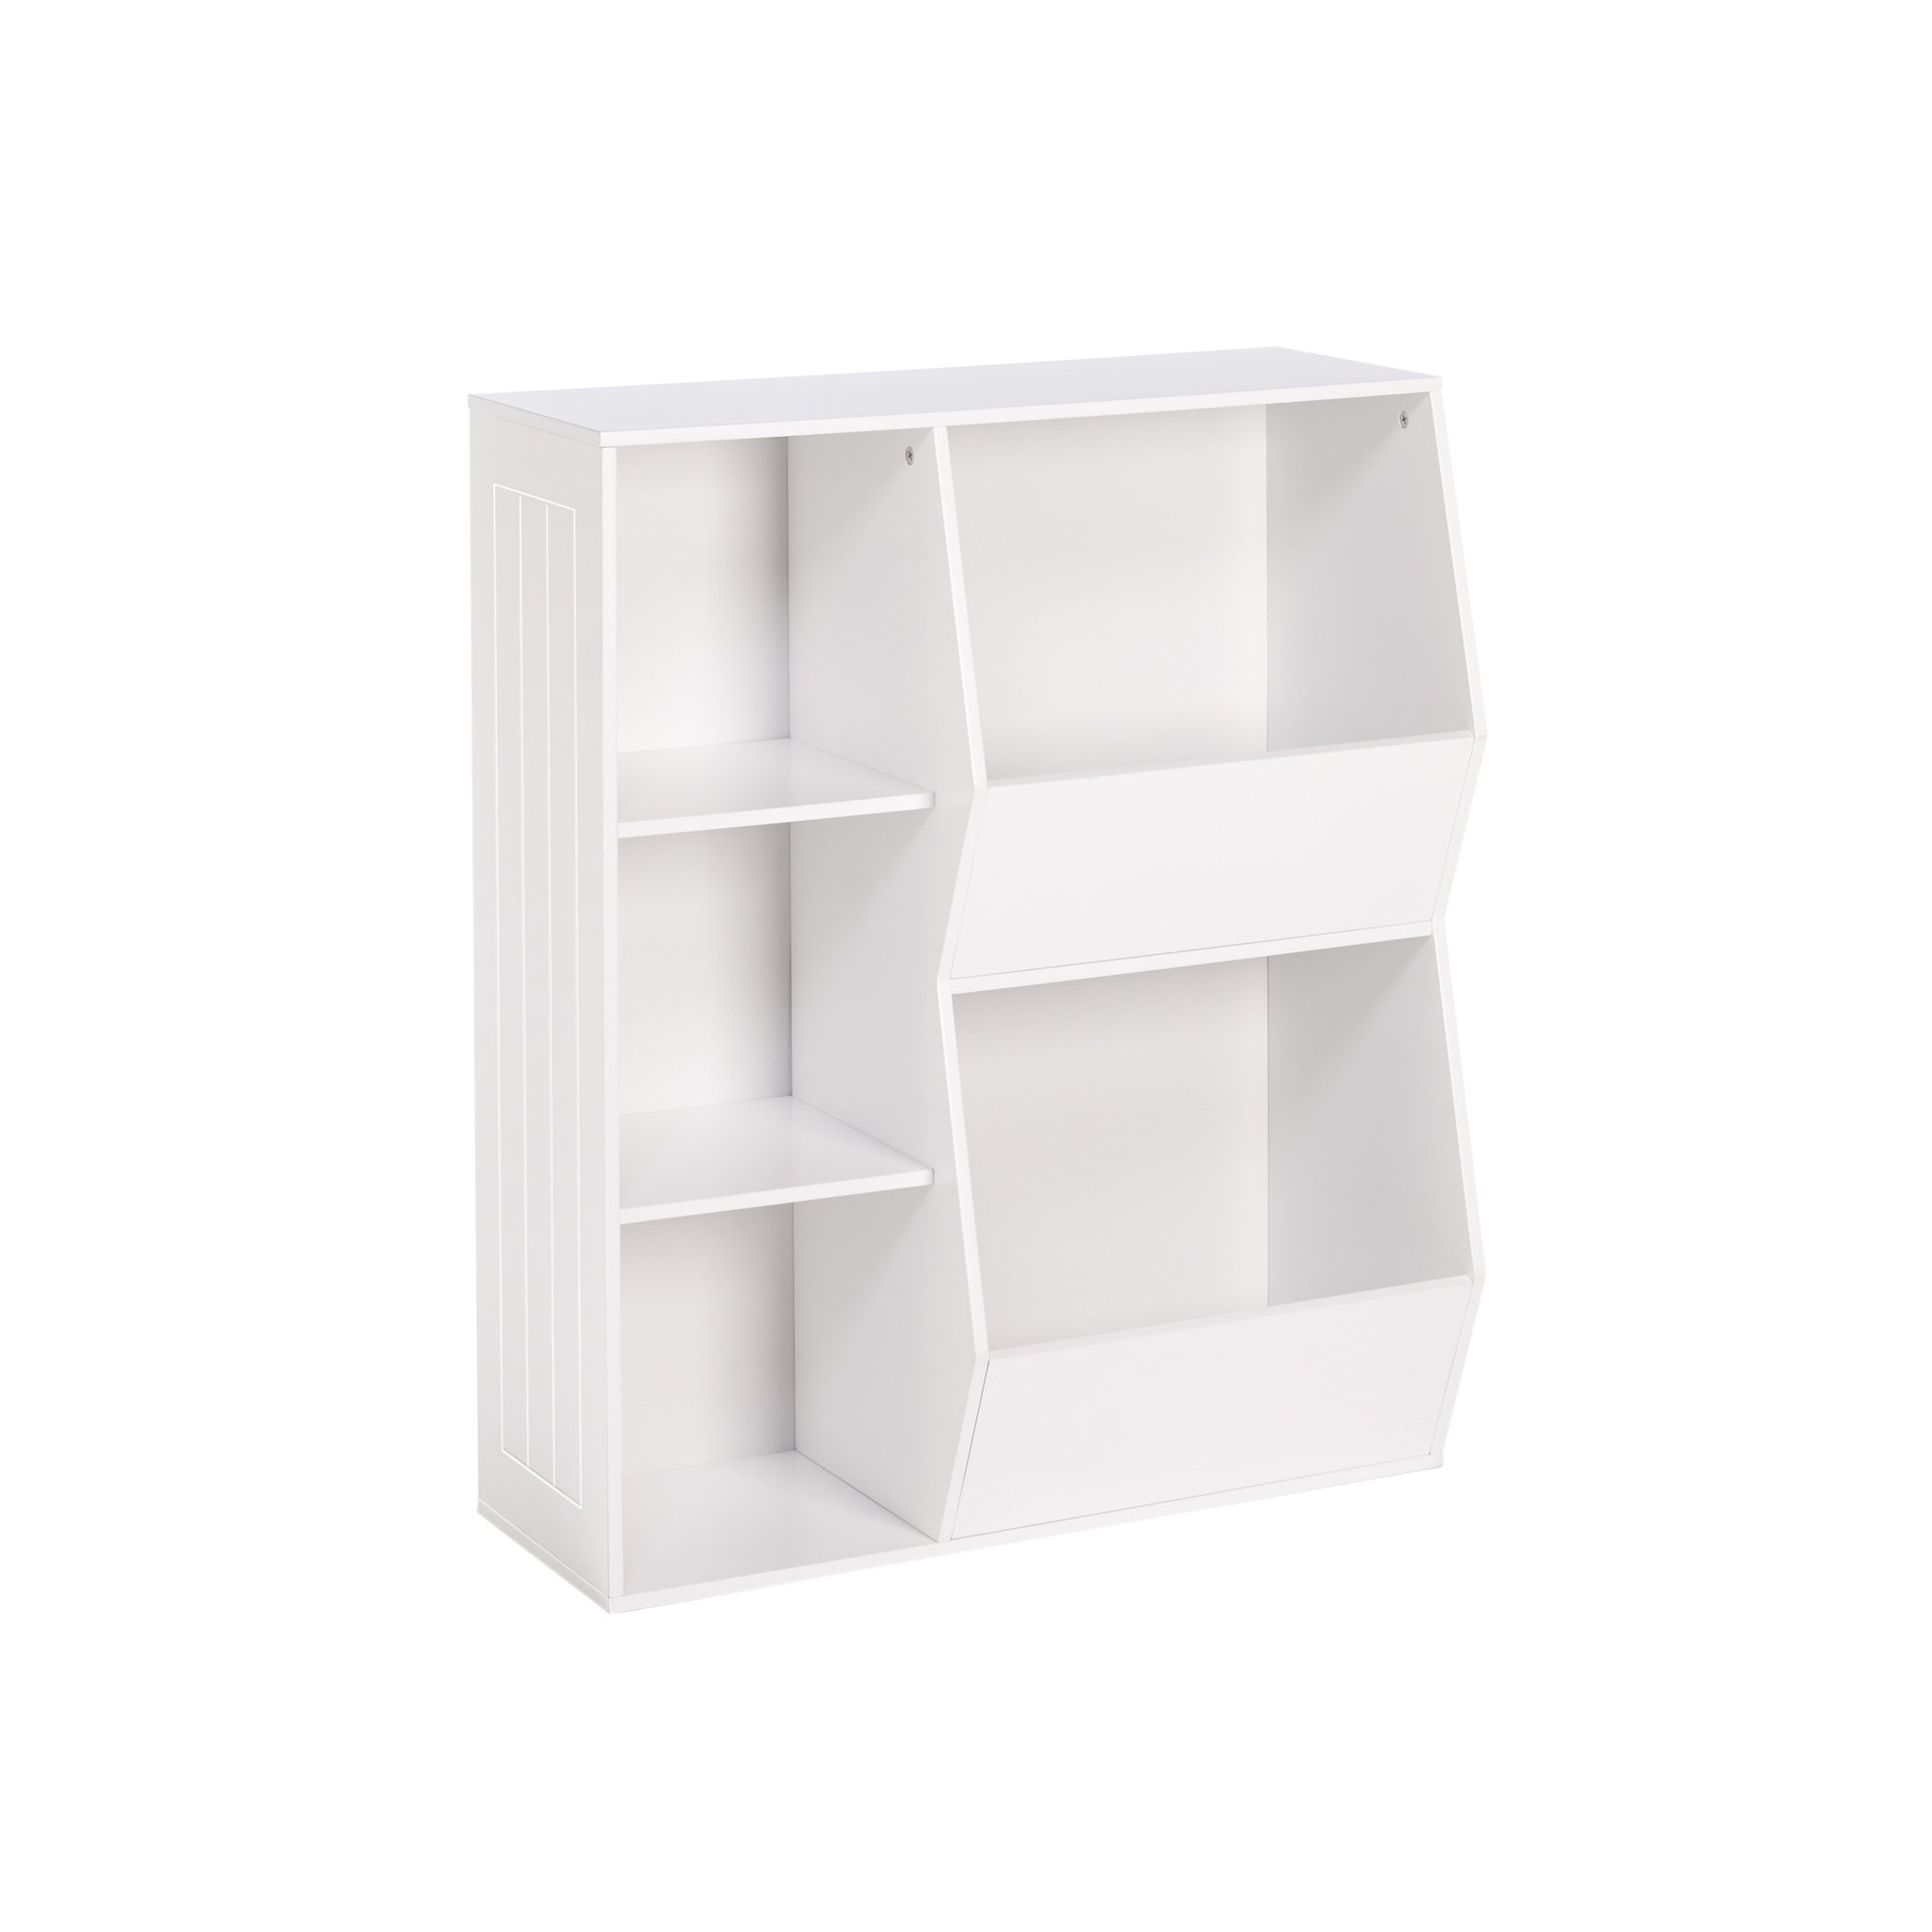 RiverRidge 3-Cubby, 2-Veggie Bin Kids Floor Cabinet, White by RiverRidge Home